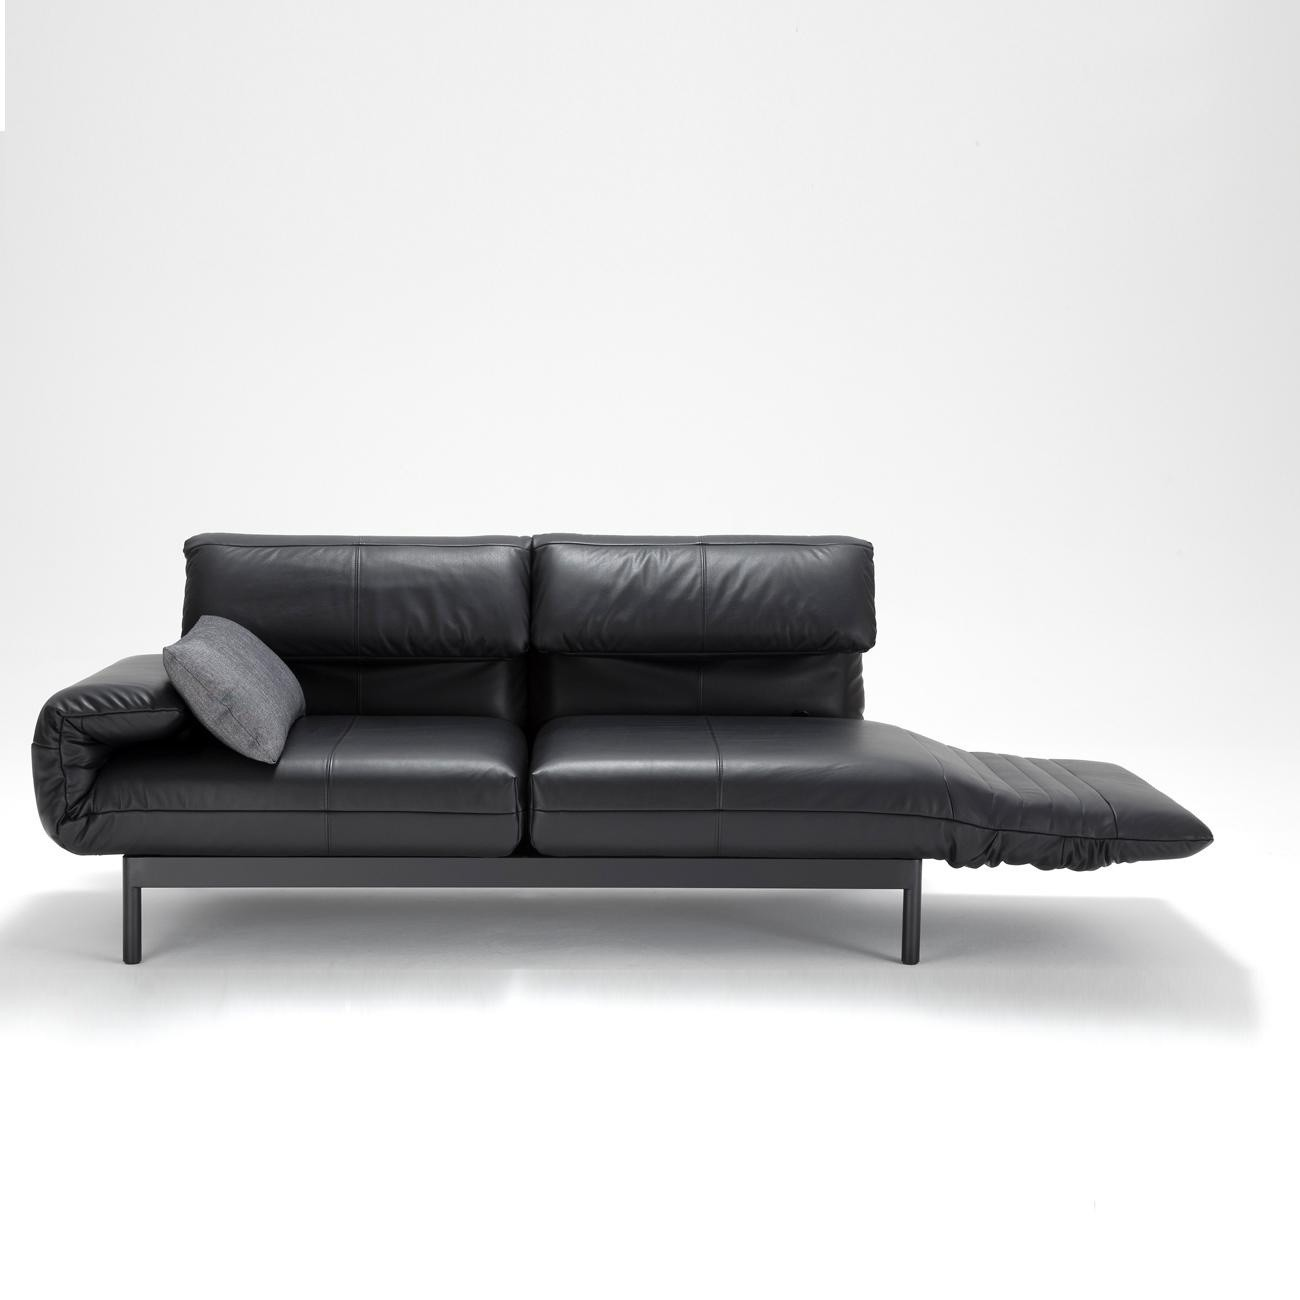 rolf benz 380 plura sofa 3 sitzer ambientedirect. Black Bedroom Furniture Sets. Home Design Ideas